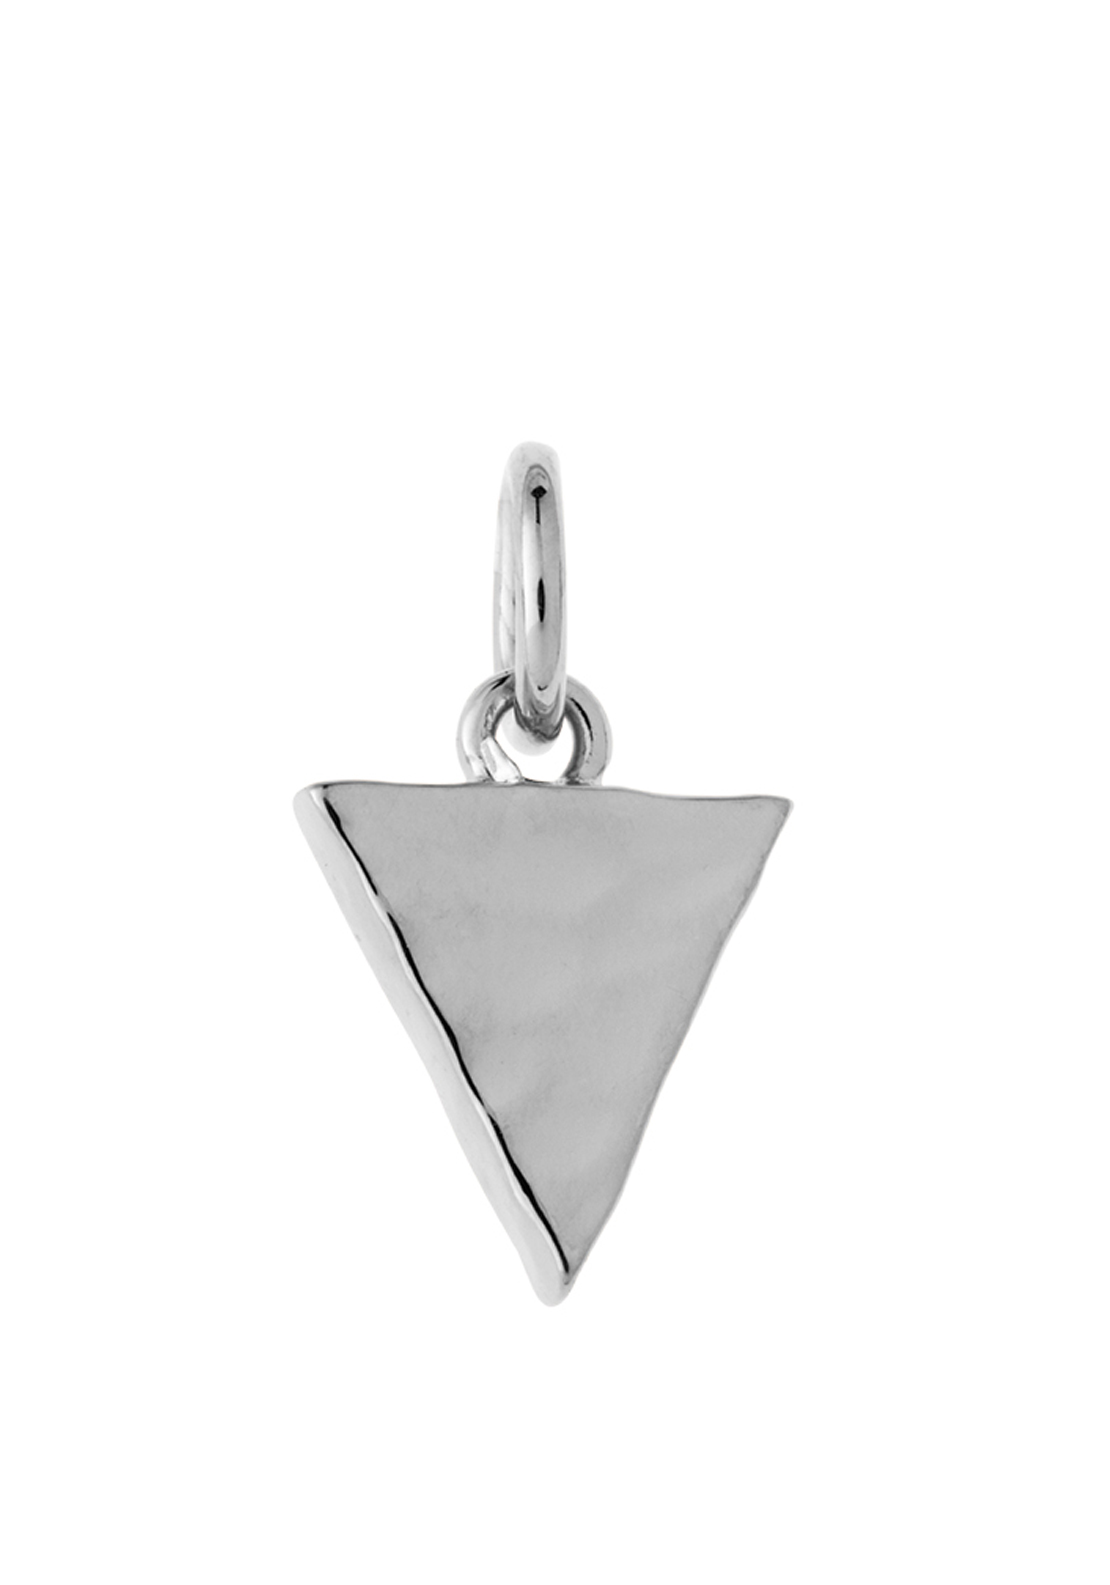 Kirstin Ash Tiny Triangle Necklace Charm, Silver Plated